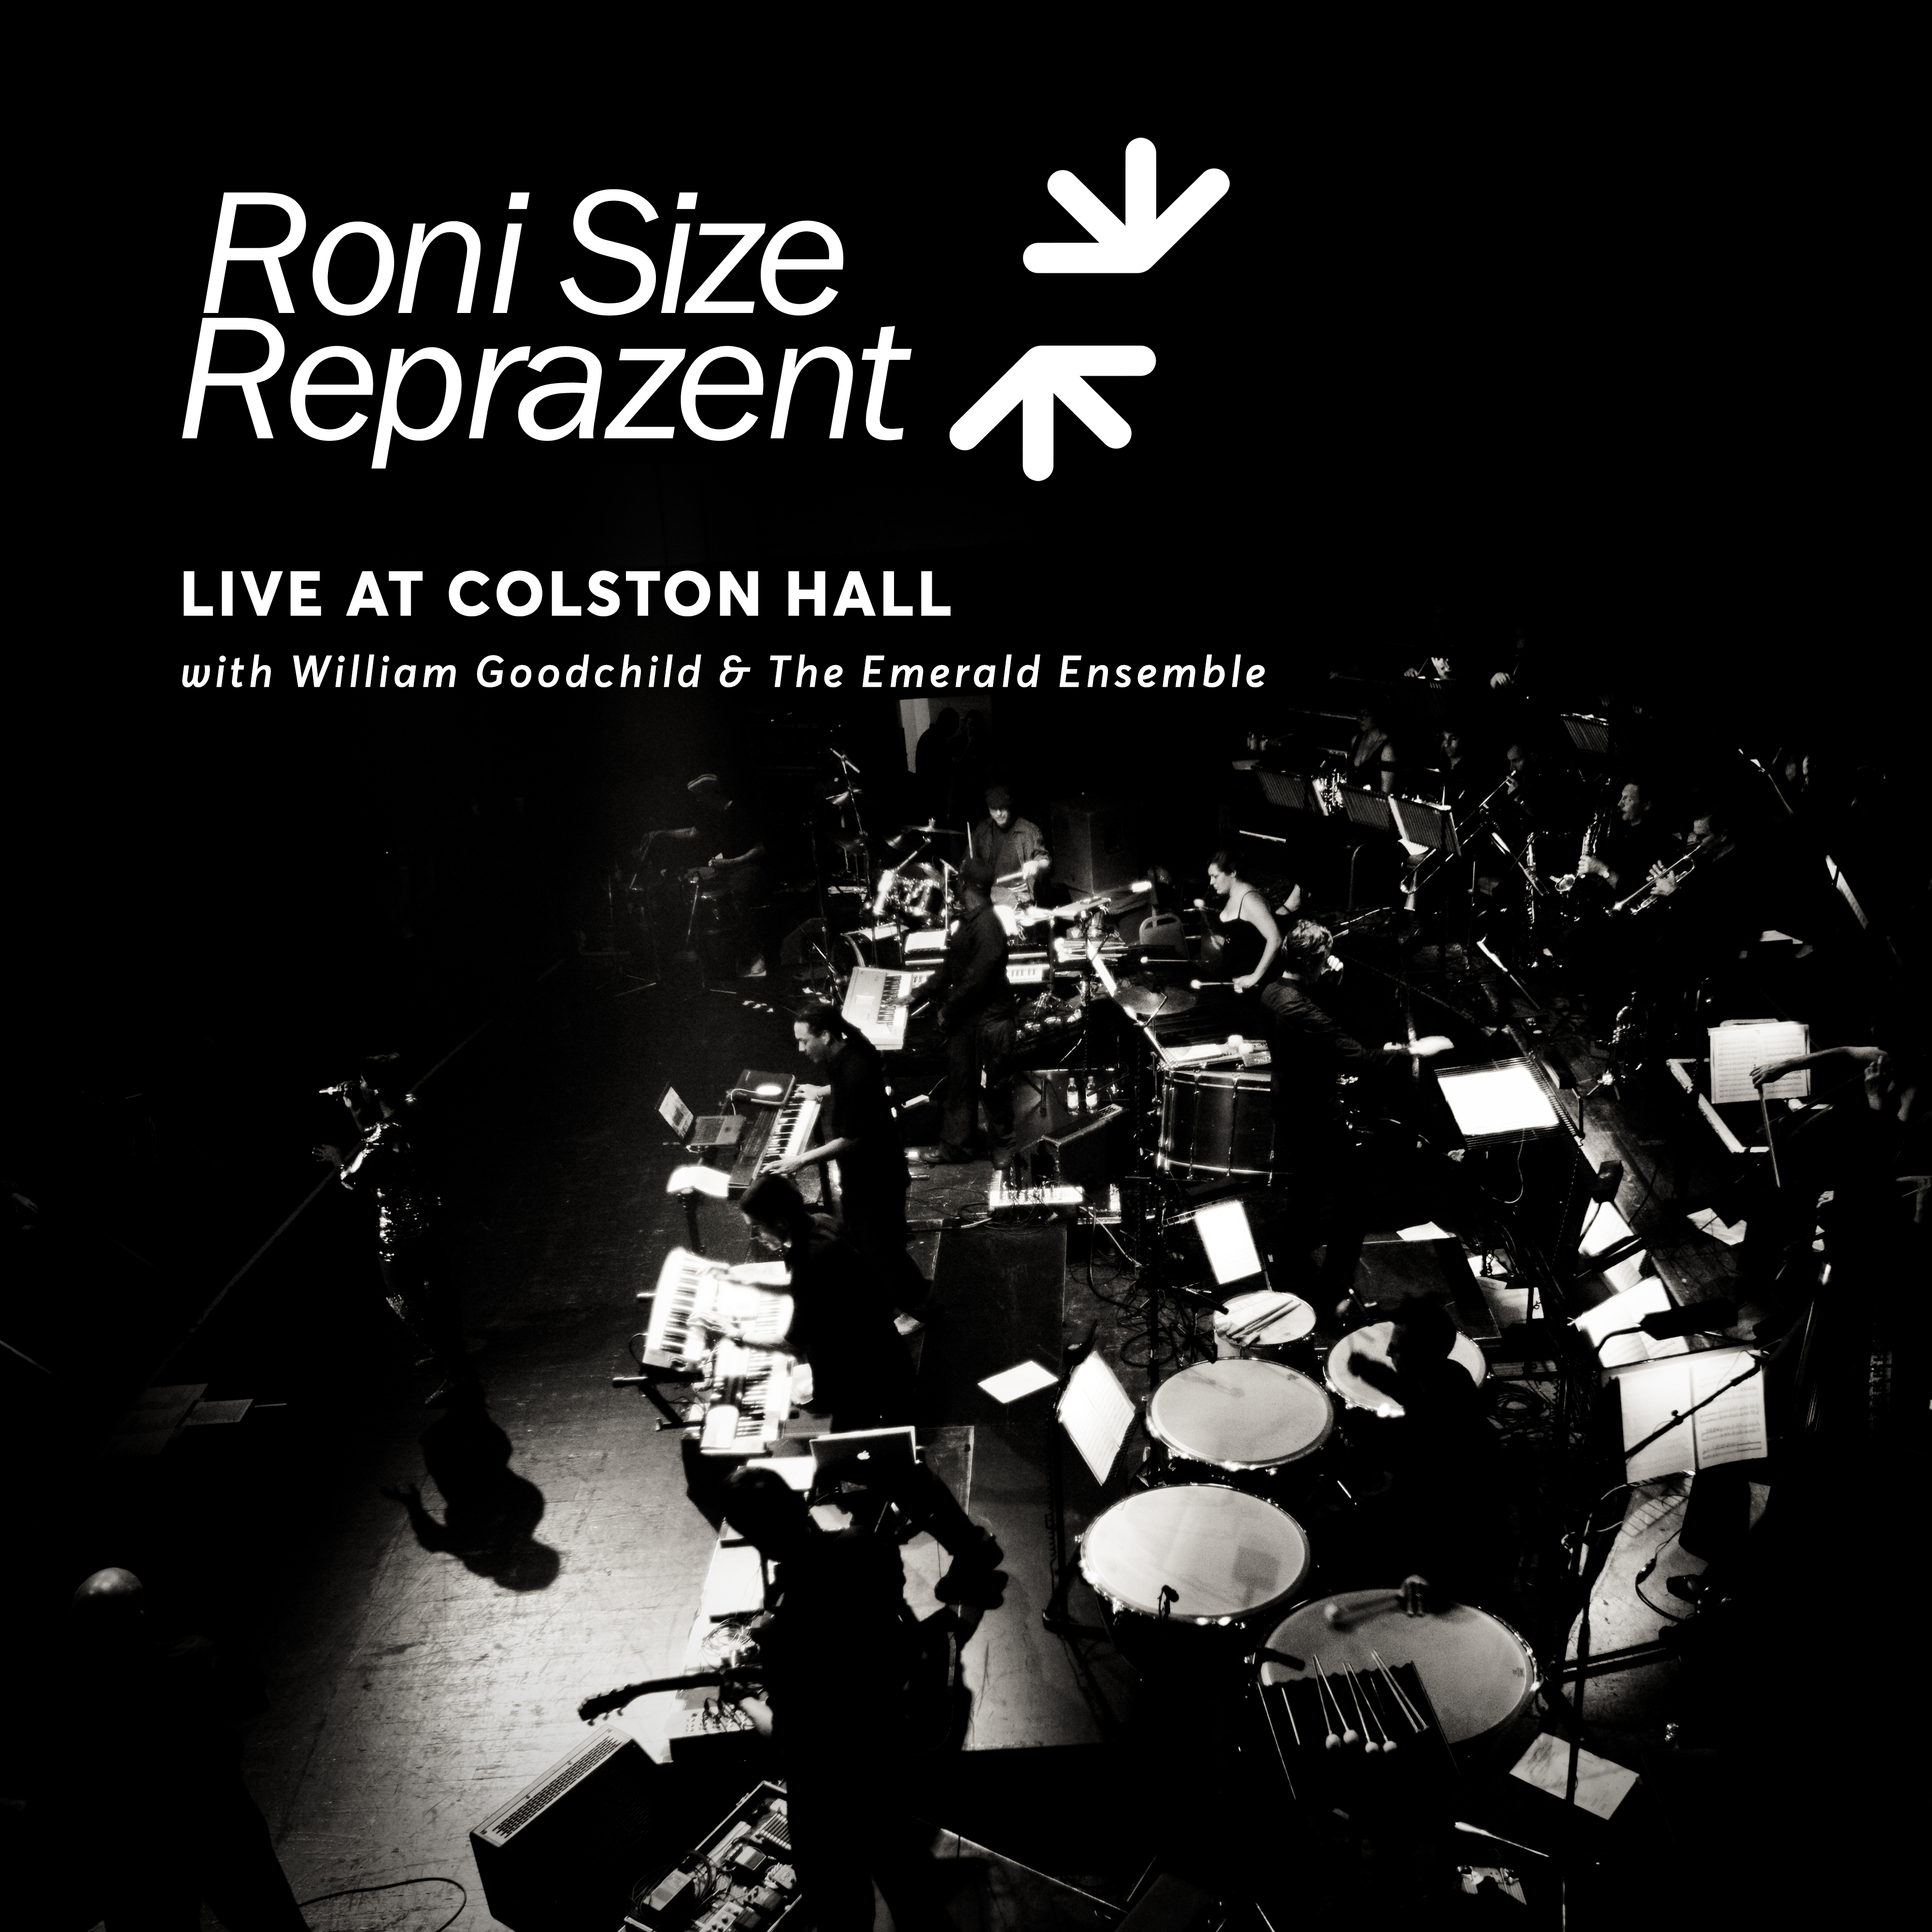 Live At Colston Hall (with William Goodchild & The Emerald Ensemble) [Digital Download] - Roni Size